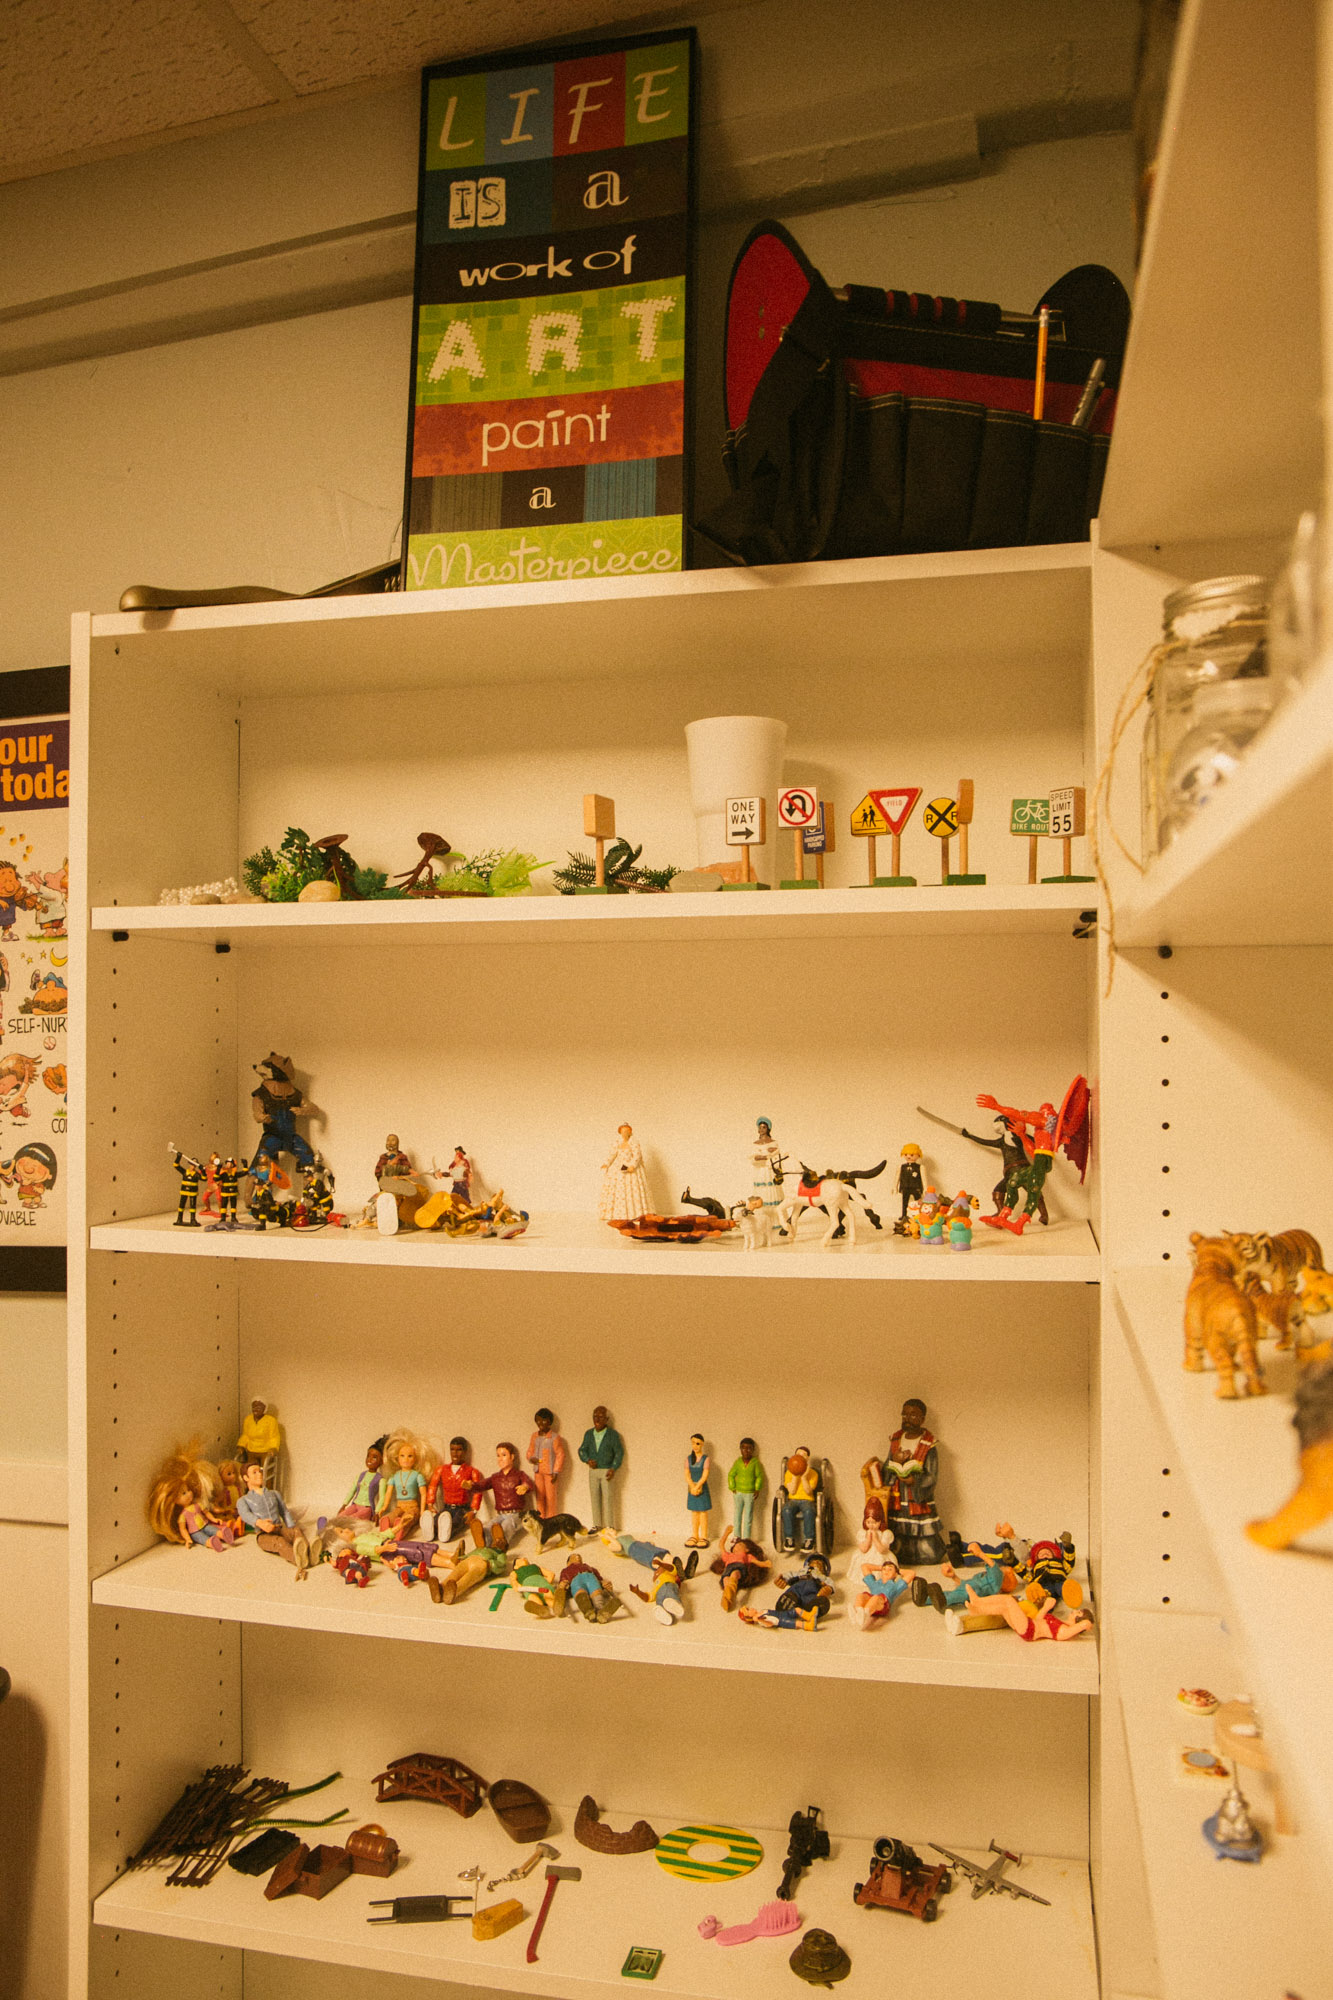 A shelf full of action figures used in play therapy